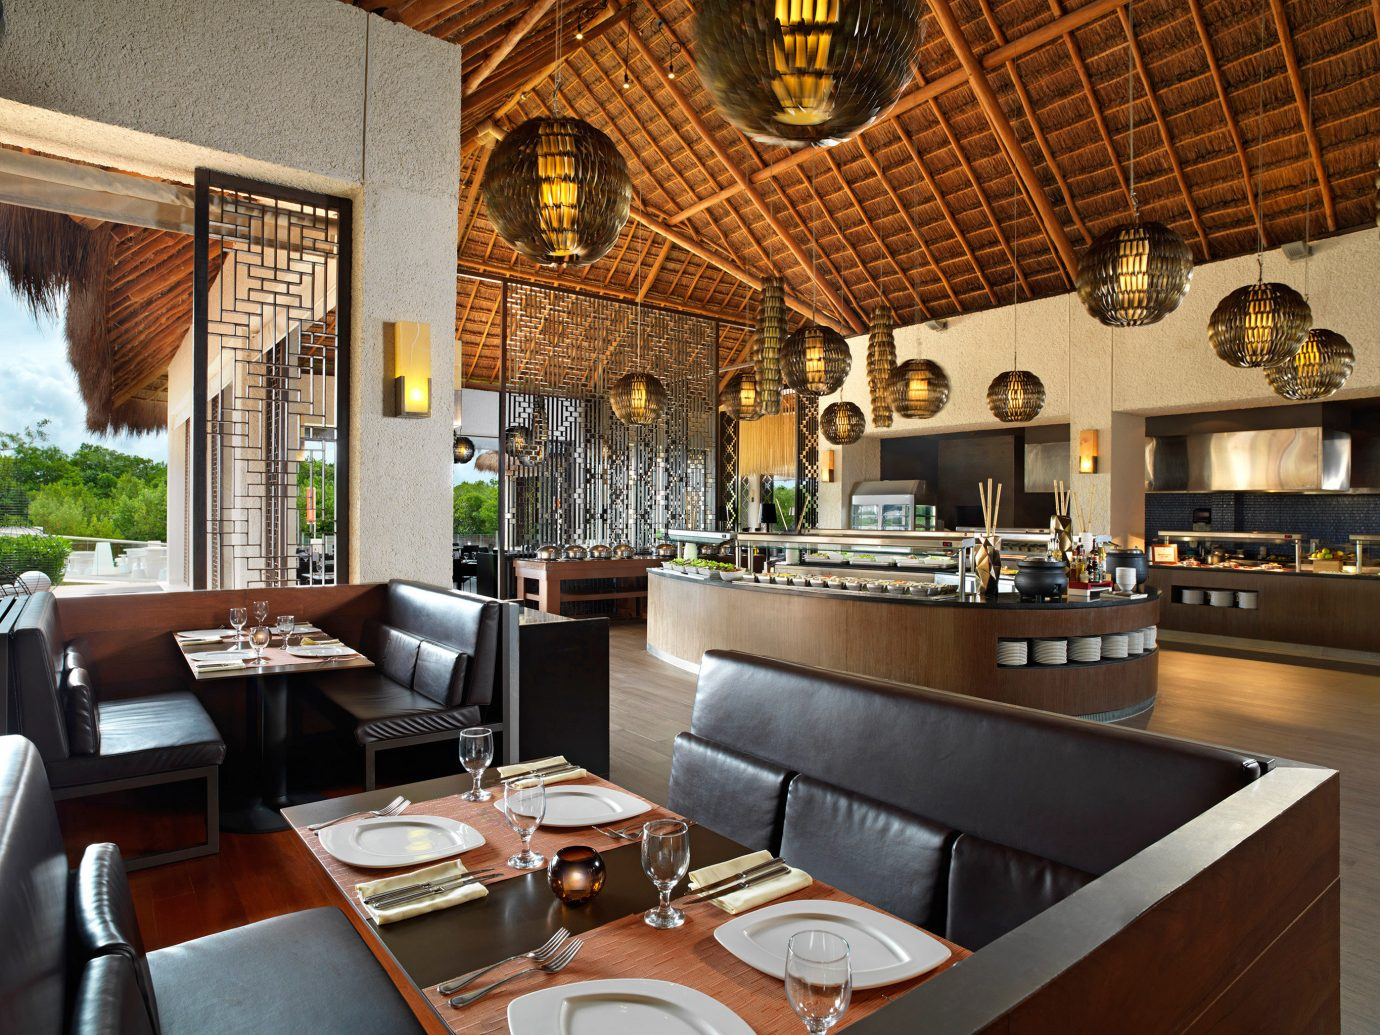 All-Inclusive Resorts Bar caribbean Dining Family Travel Hotels Modern indoor table property room estate restaurant interior design home real estate living room Lobby